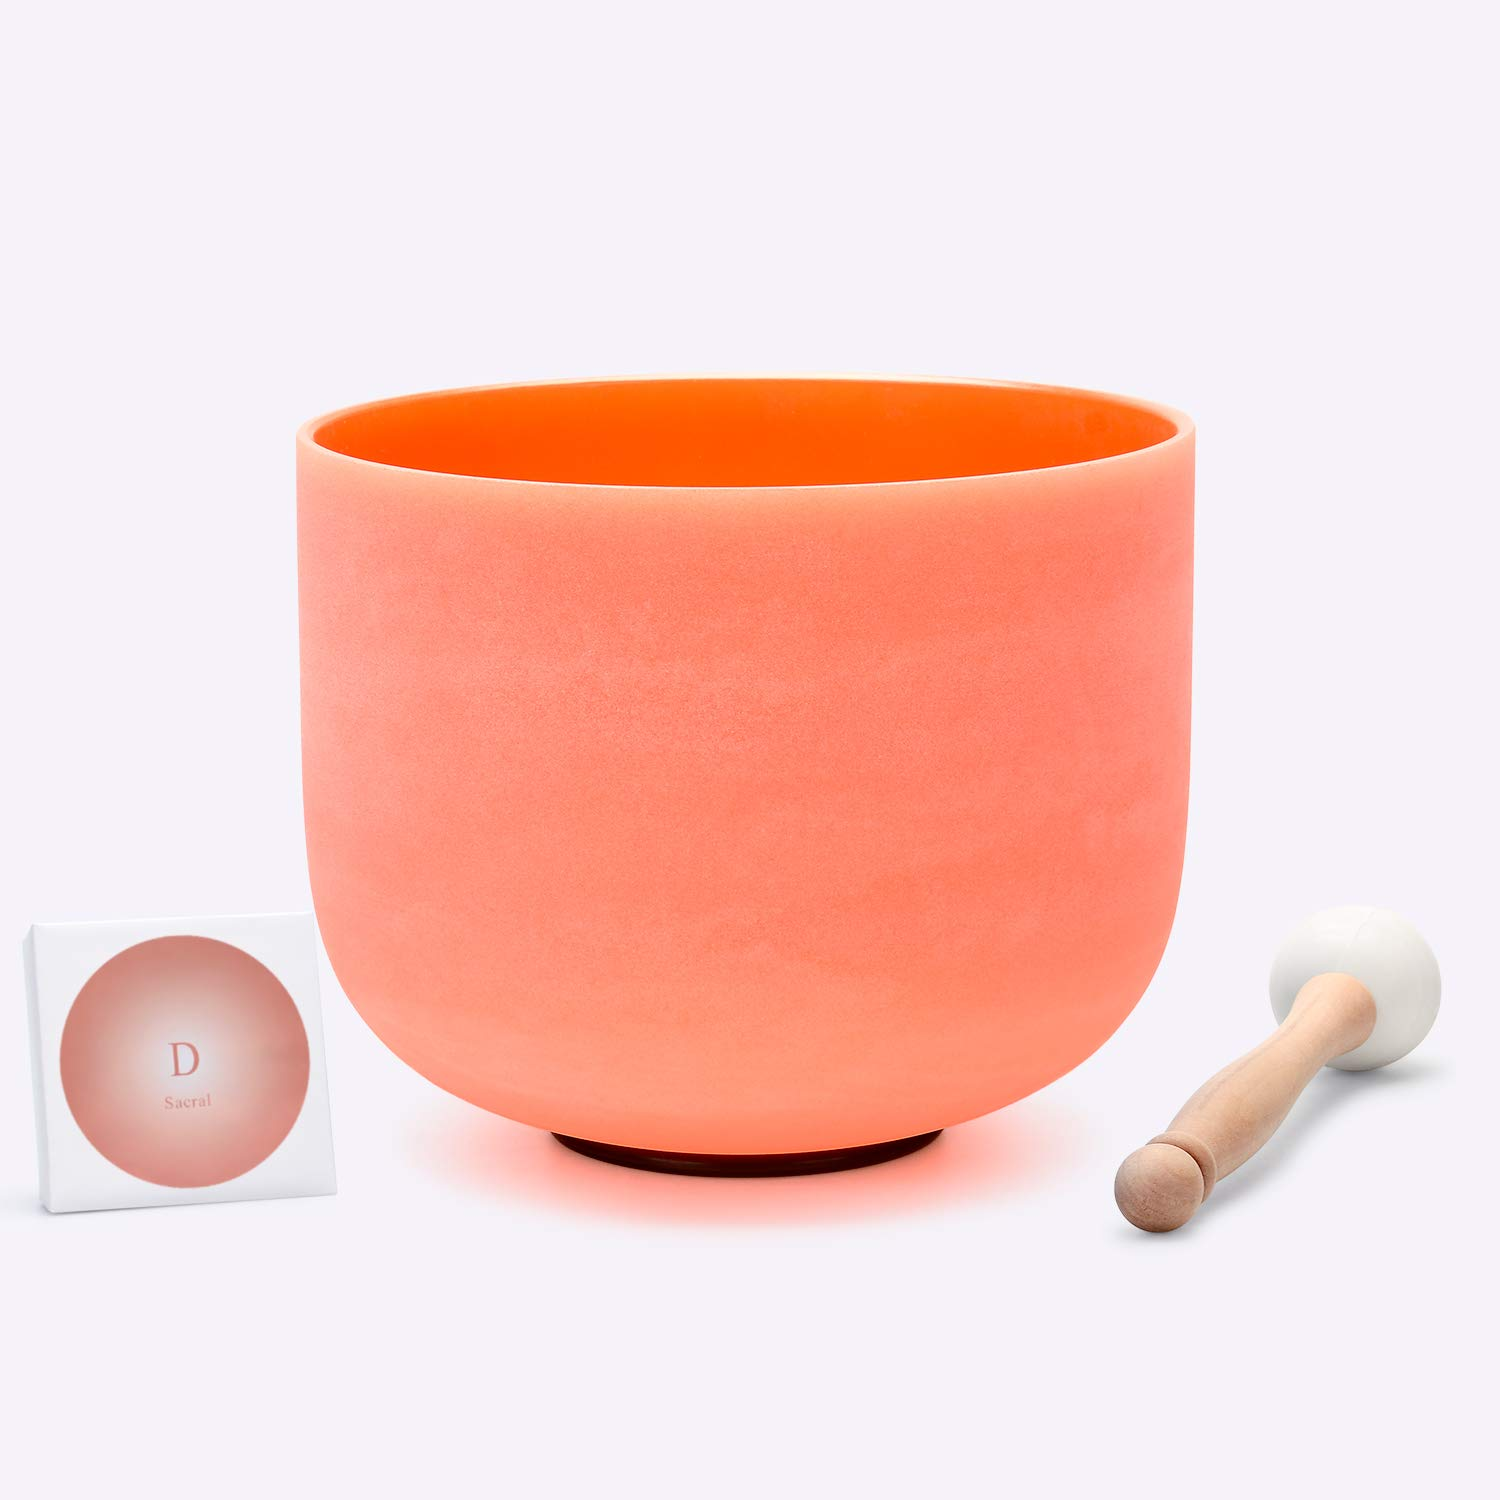 TOPFUND 432hz Tuned Orange Colored Quartz Crystal Singing Bowl D Note Sacral Chakra 8 inch, O-ring and Rubber Mallet Included